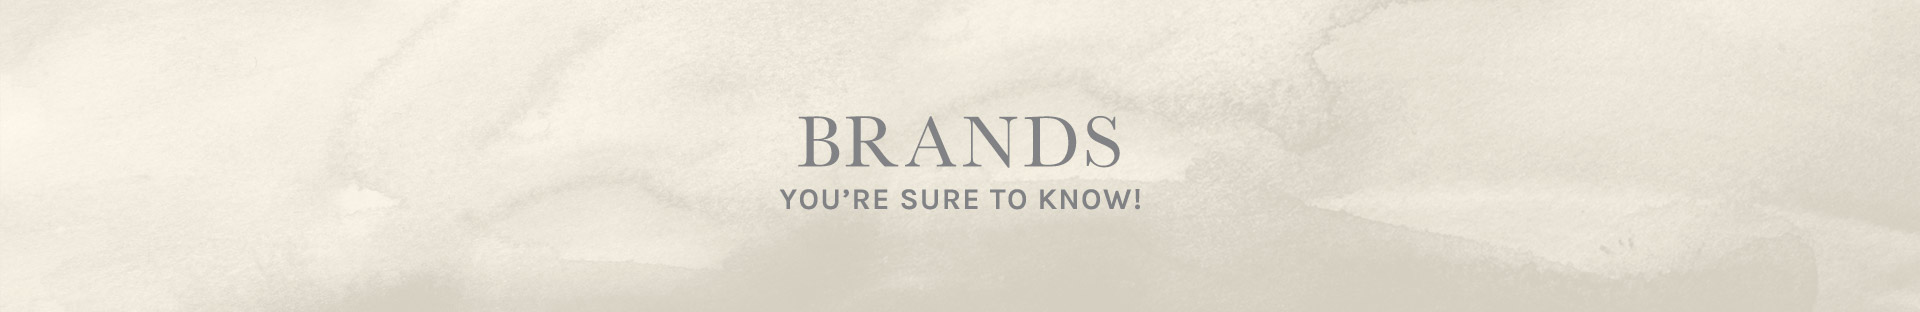 Magpies Gifts | Brands